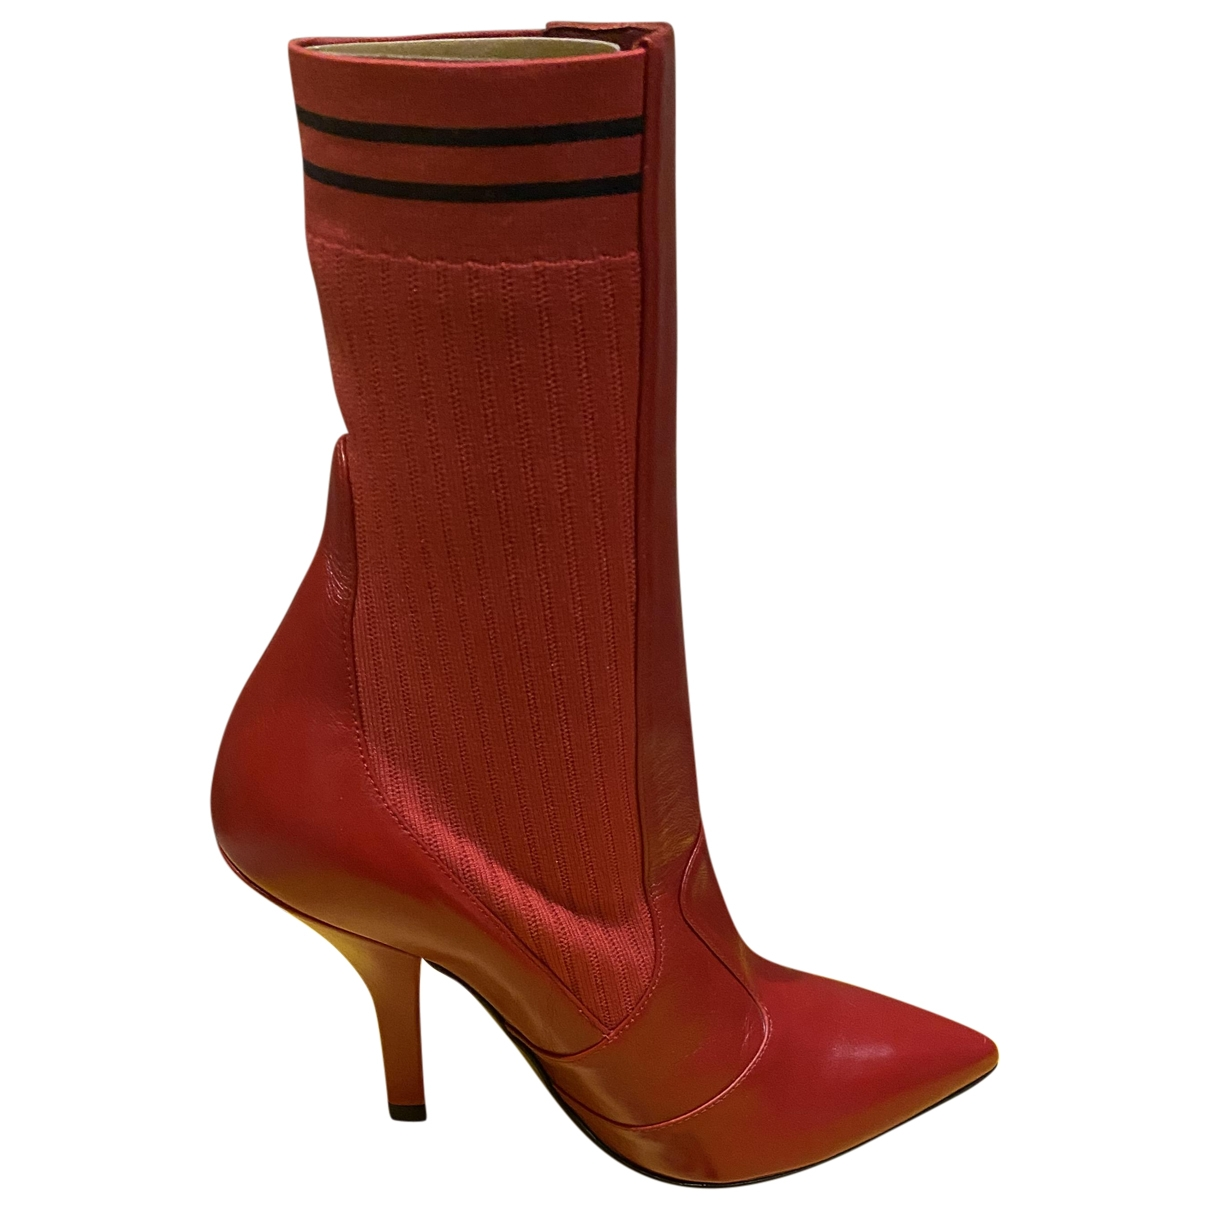 Fendi \N Red Leather Boots for Women 35 EU